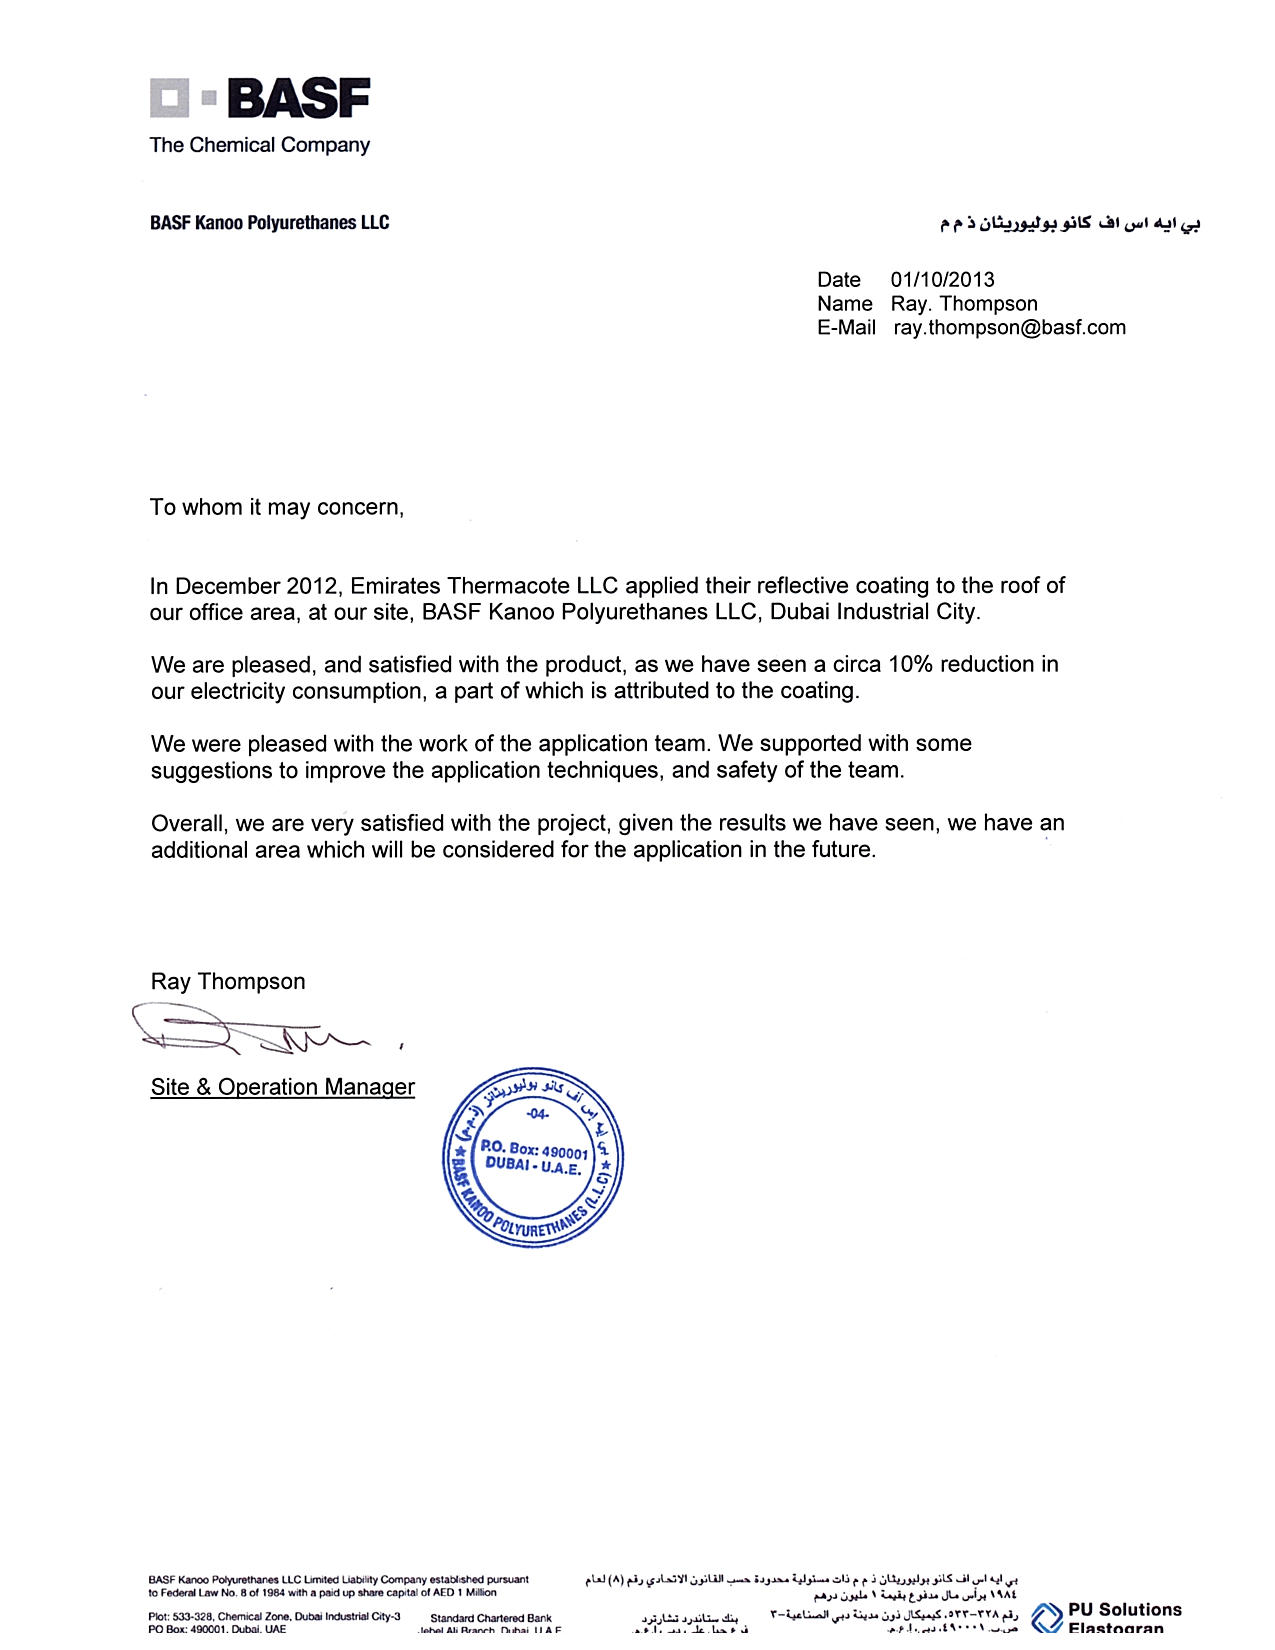 BASF Thermacote reference letter_1540312269855